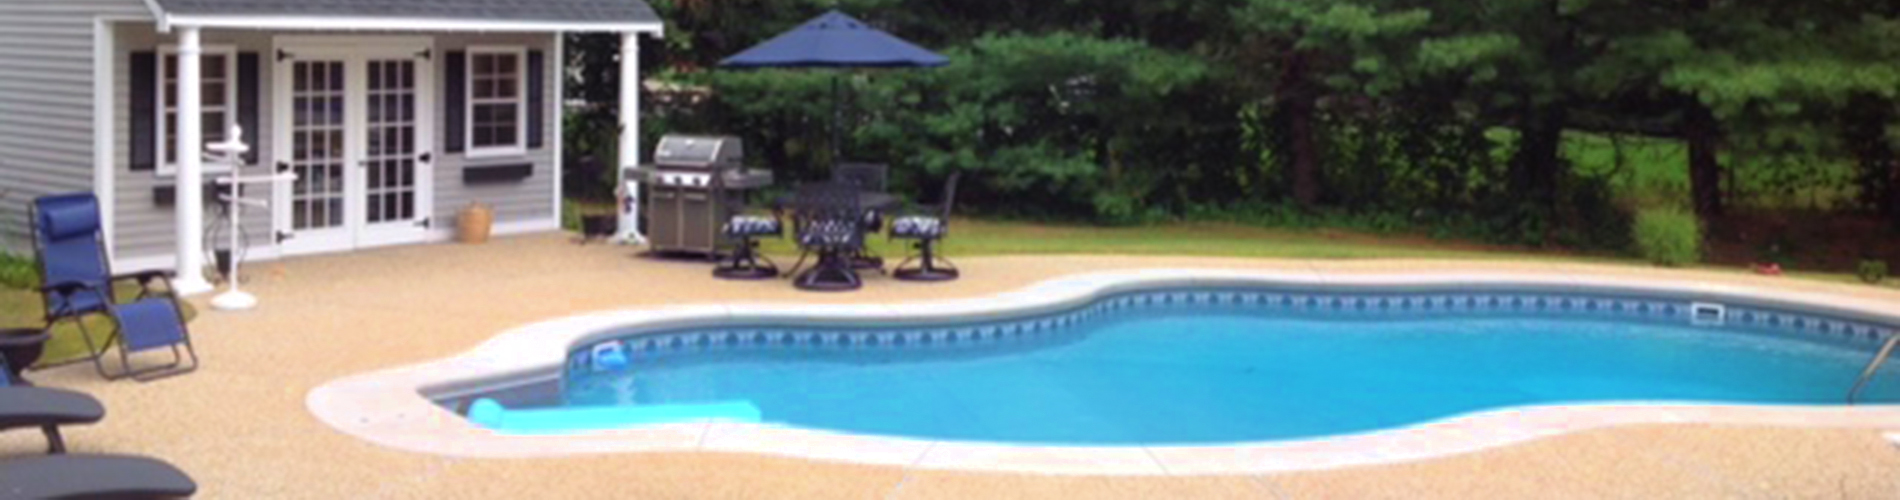 Quality Pool Services For 16 Years…